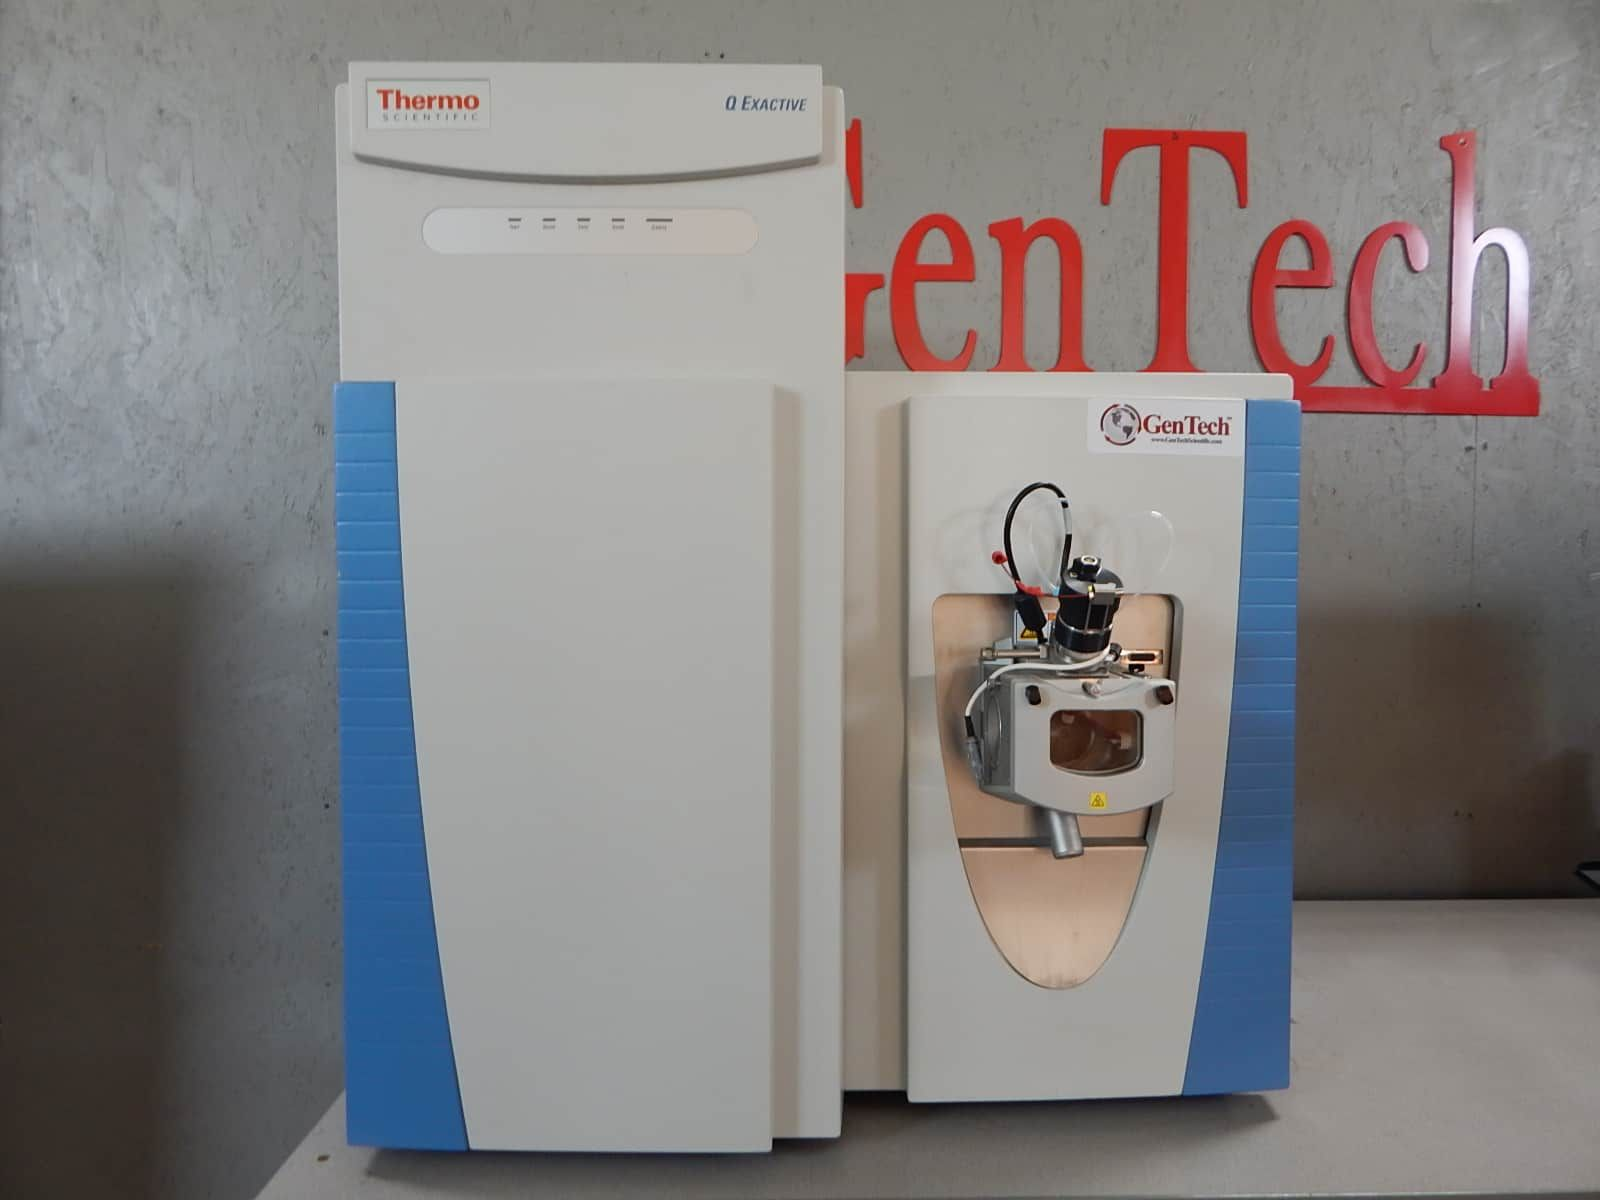 Thermo Q Exactive Benchtop LC/MS Orbitrap Mass Spectrometer